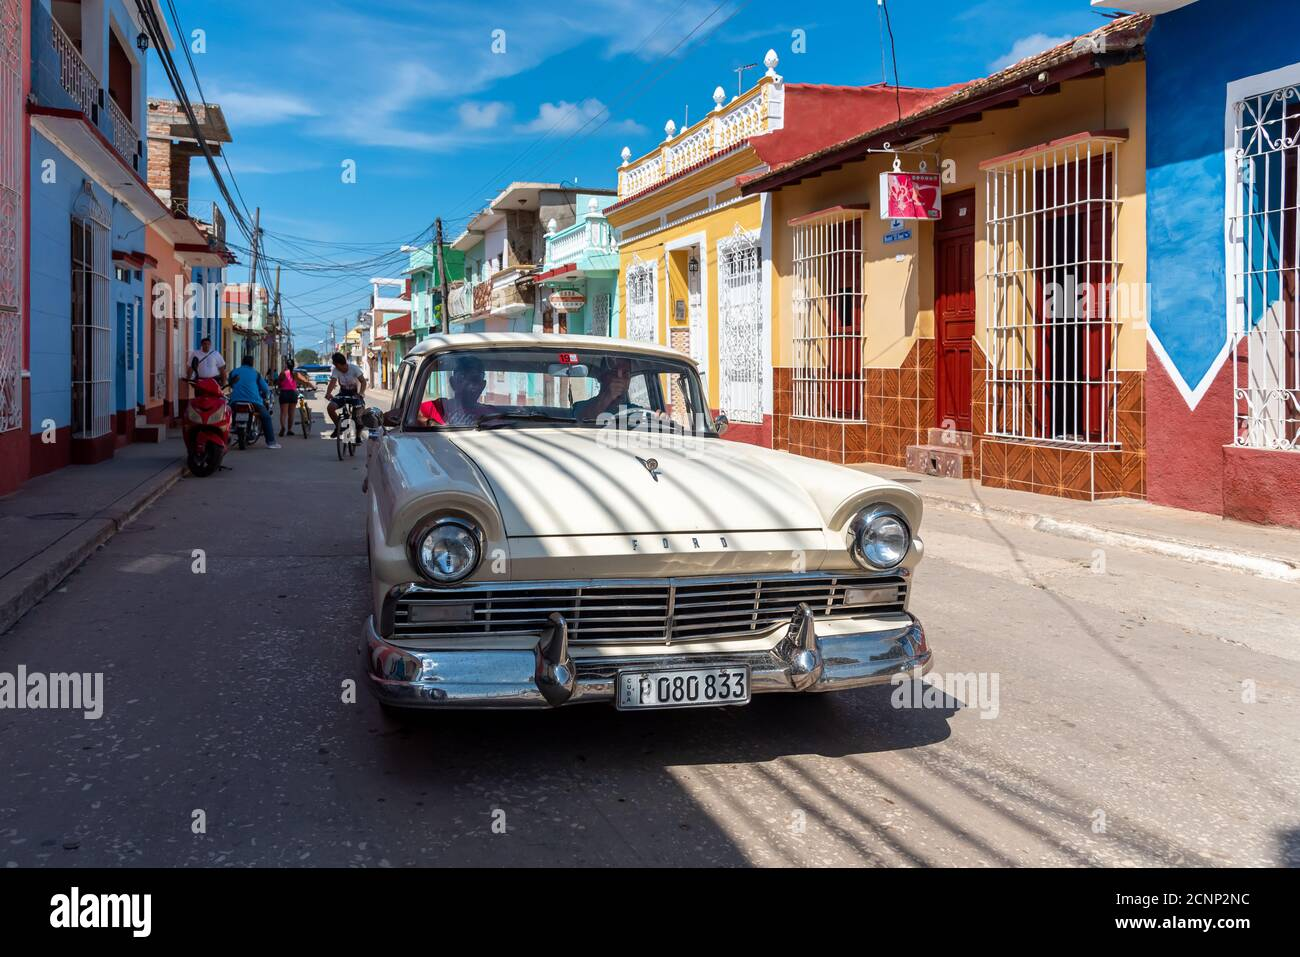 August 26, 2019: Street scene with an old American car on the cobblestone street. Trinidad, Cuba Stock Photo